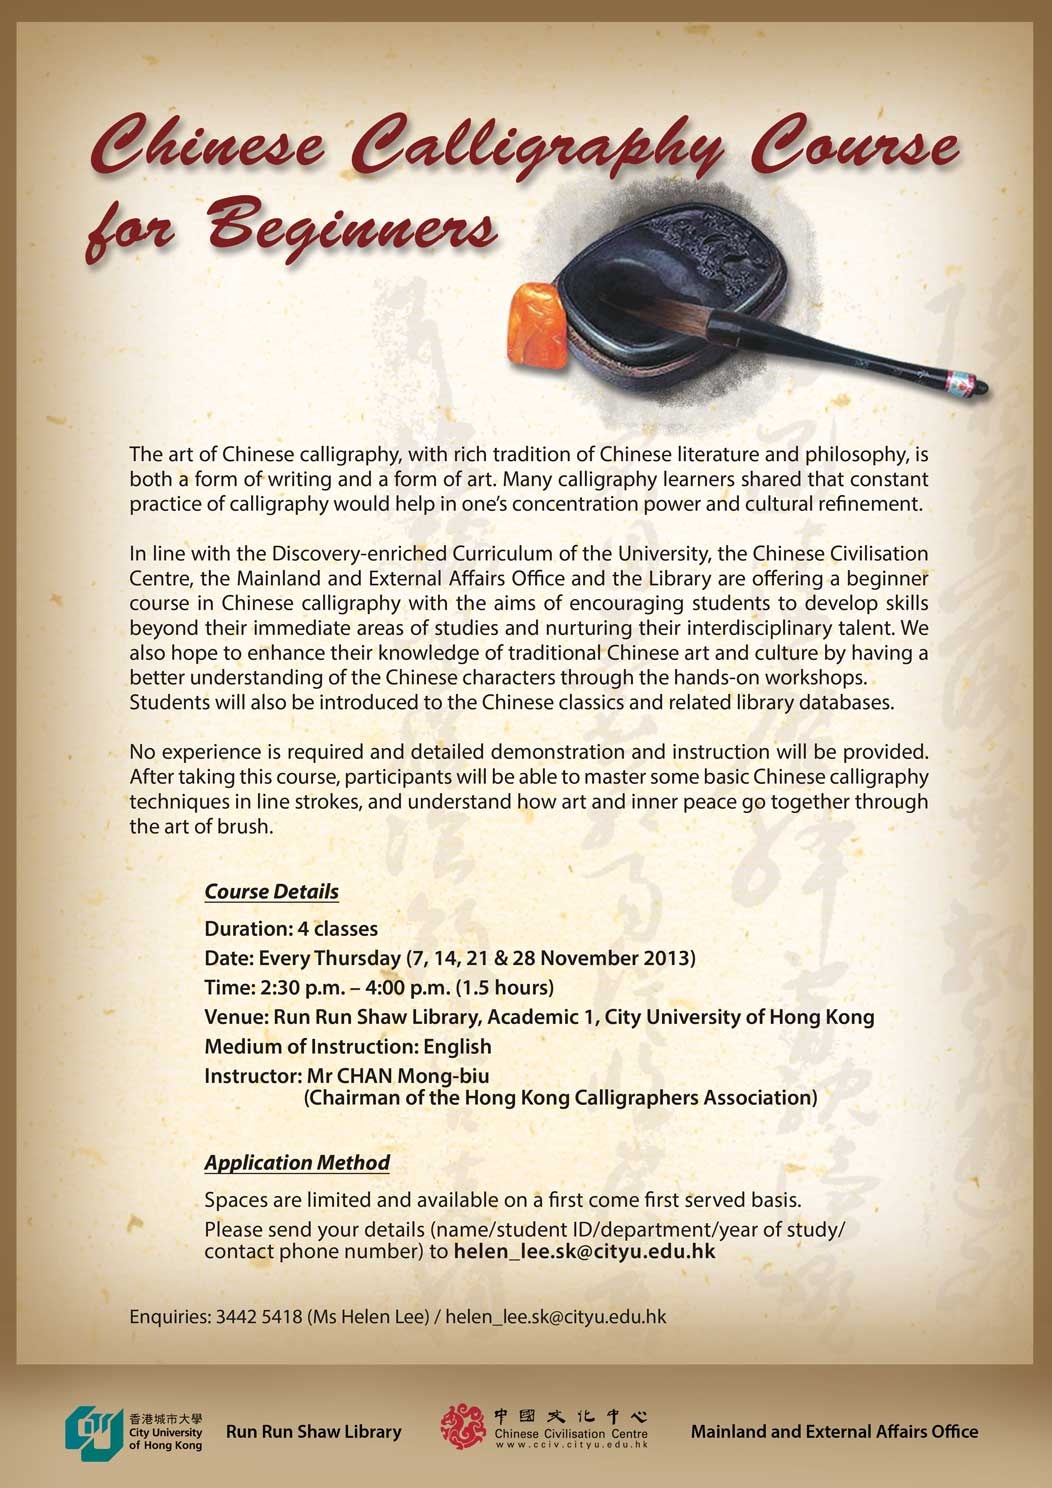 Chinese Calligraphy Course for Beginners